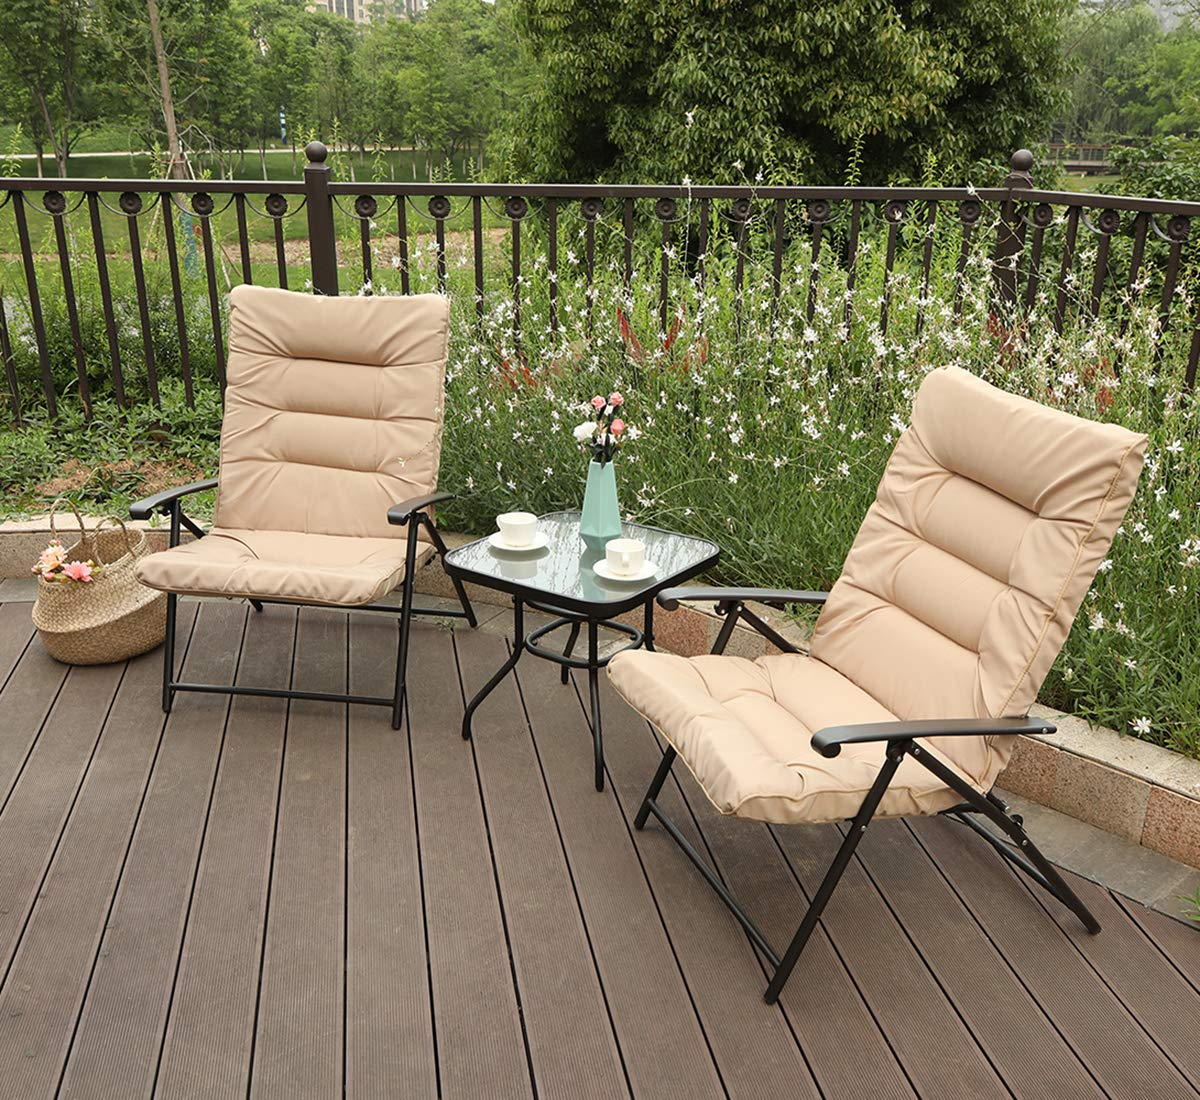 PHI VILLA Patio 3 PC Padded Folding Chair Set Adjustable Reclining 2 Position, Beige by PHI VILLA (Image #7)